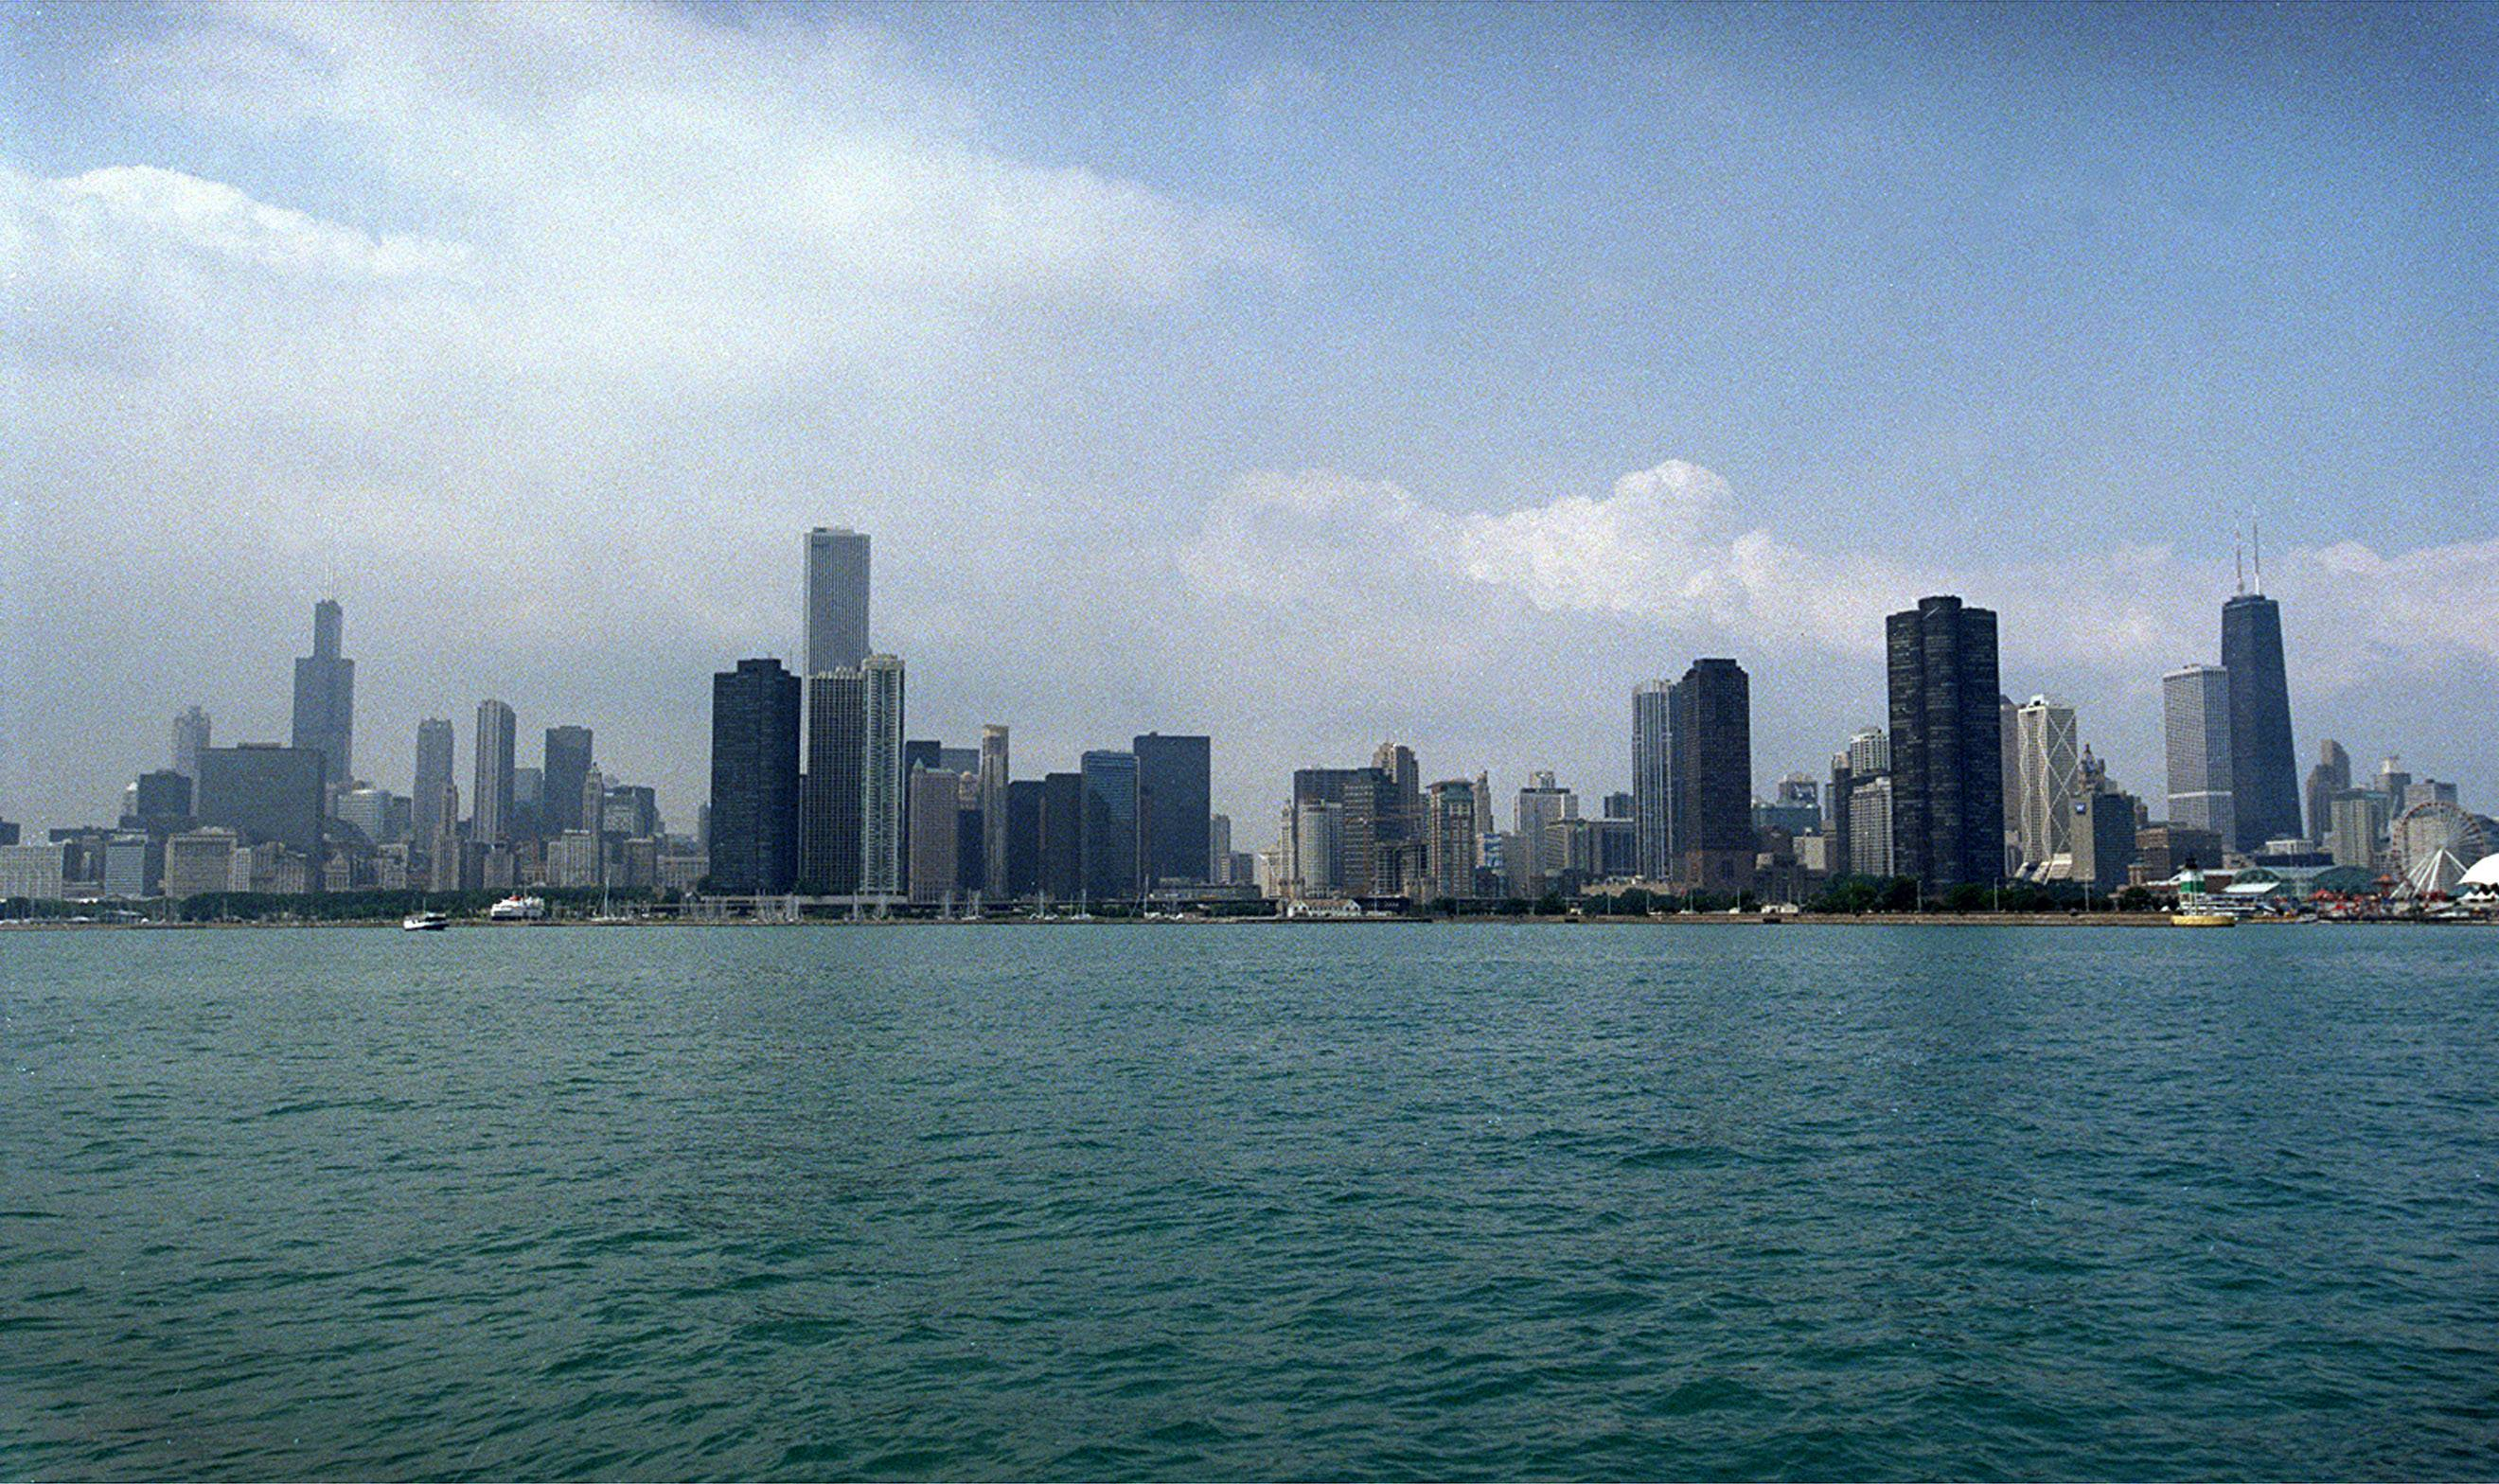 The National Weather Service has issued an air quality warning for Chicago and the suburbs until midnight.